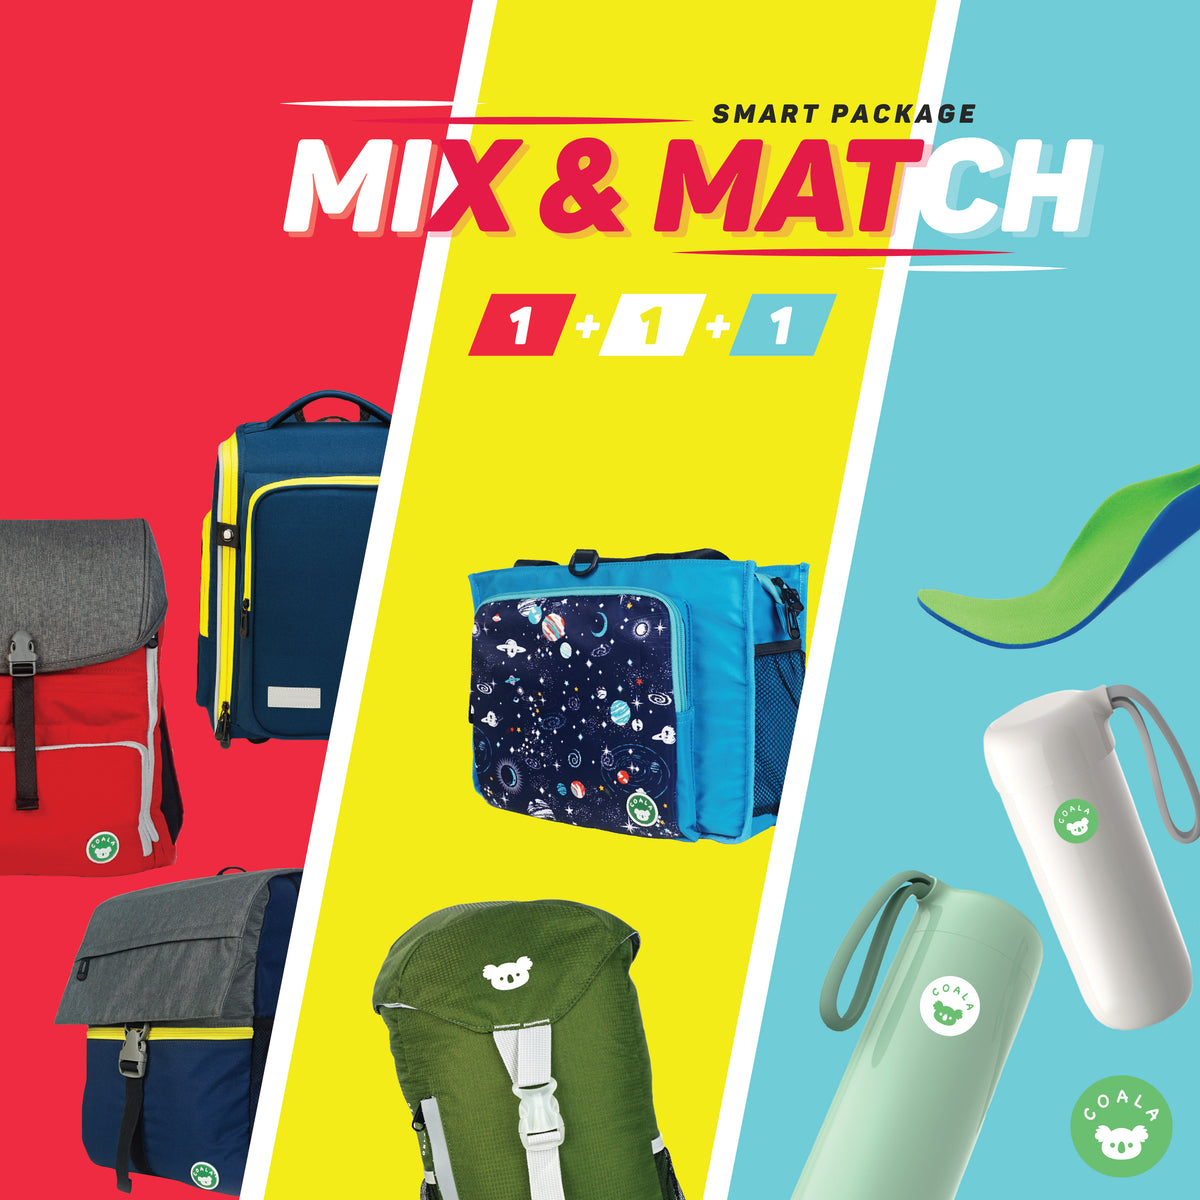 Coala™ Smart Combo -- MIX & MATCH